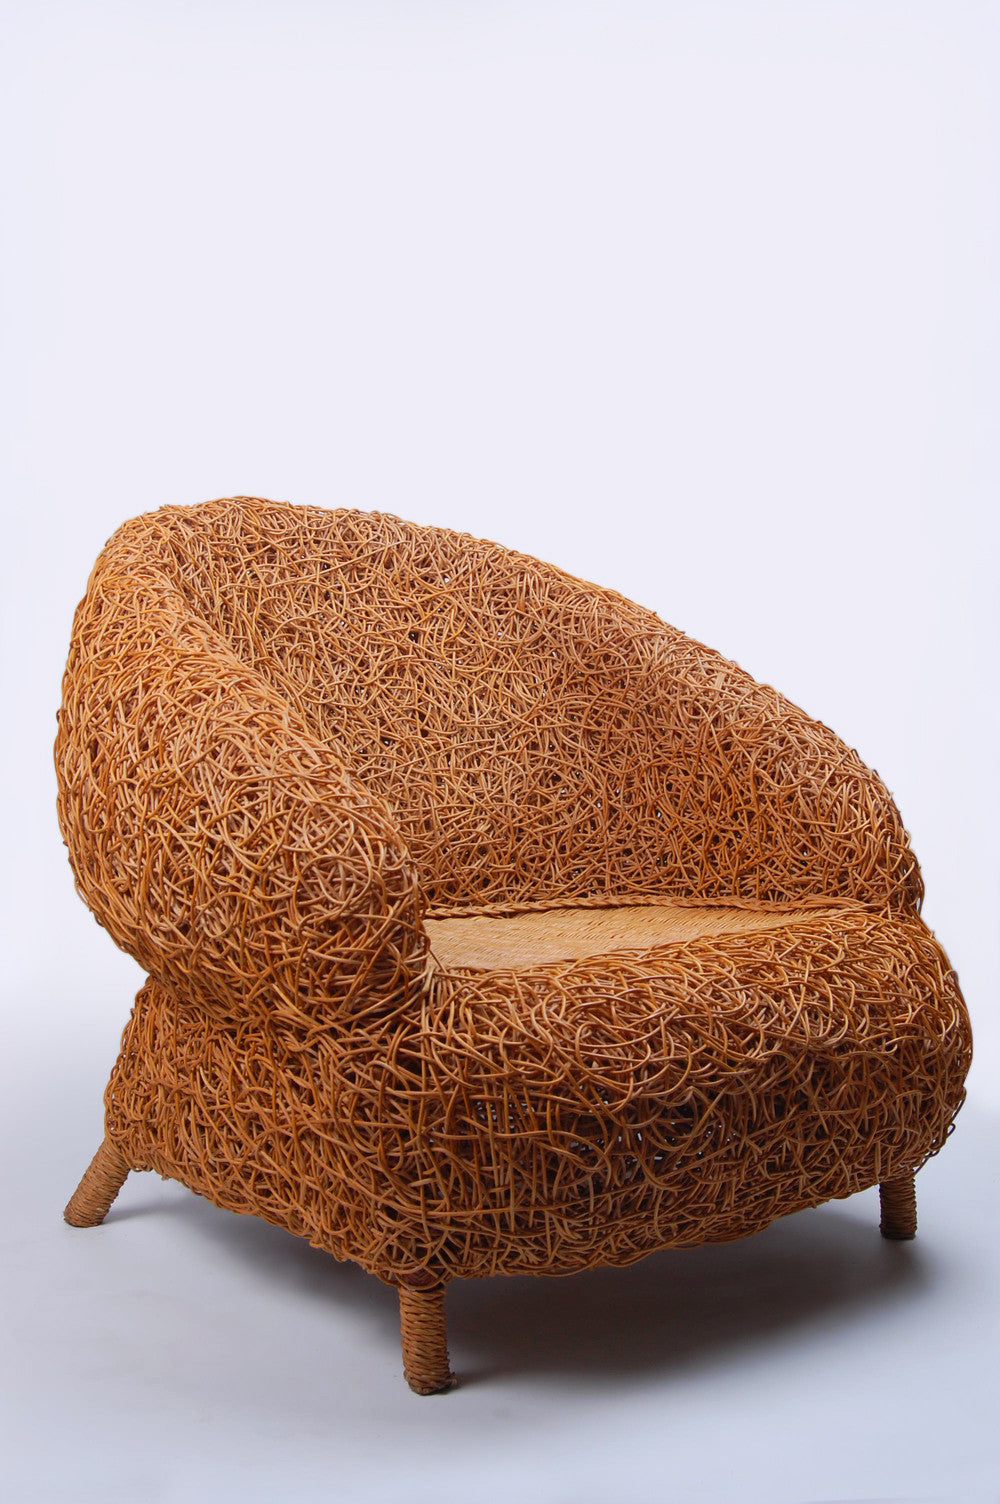 BangSai   Rattan Bird Nest Chair